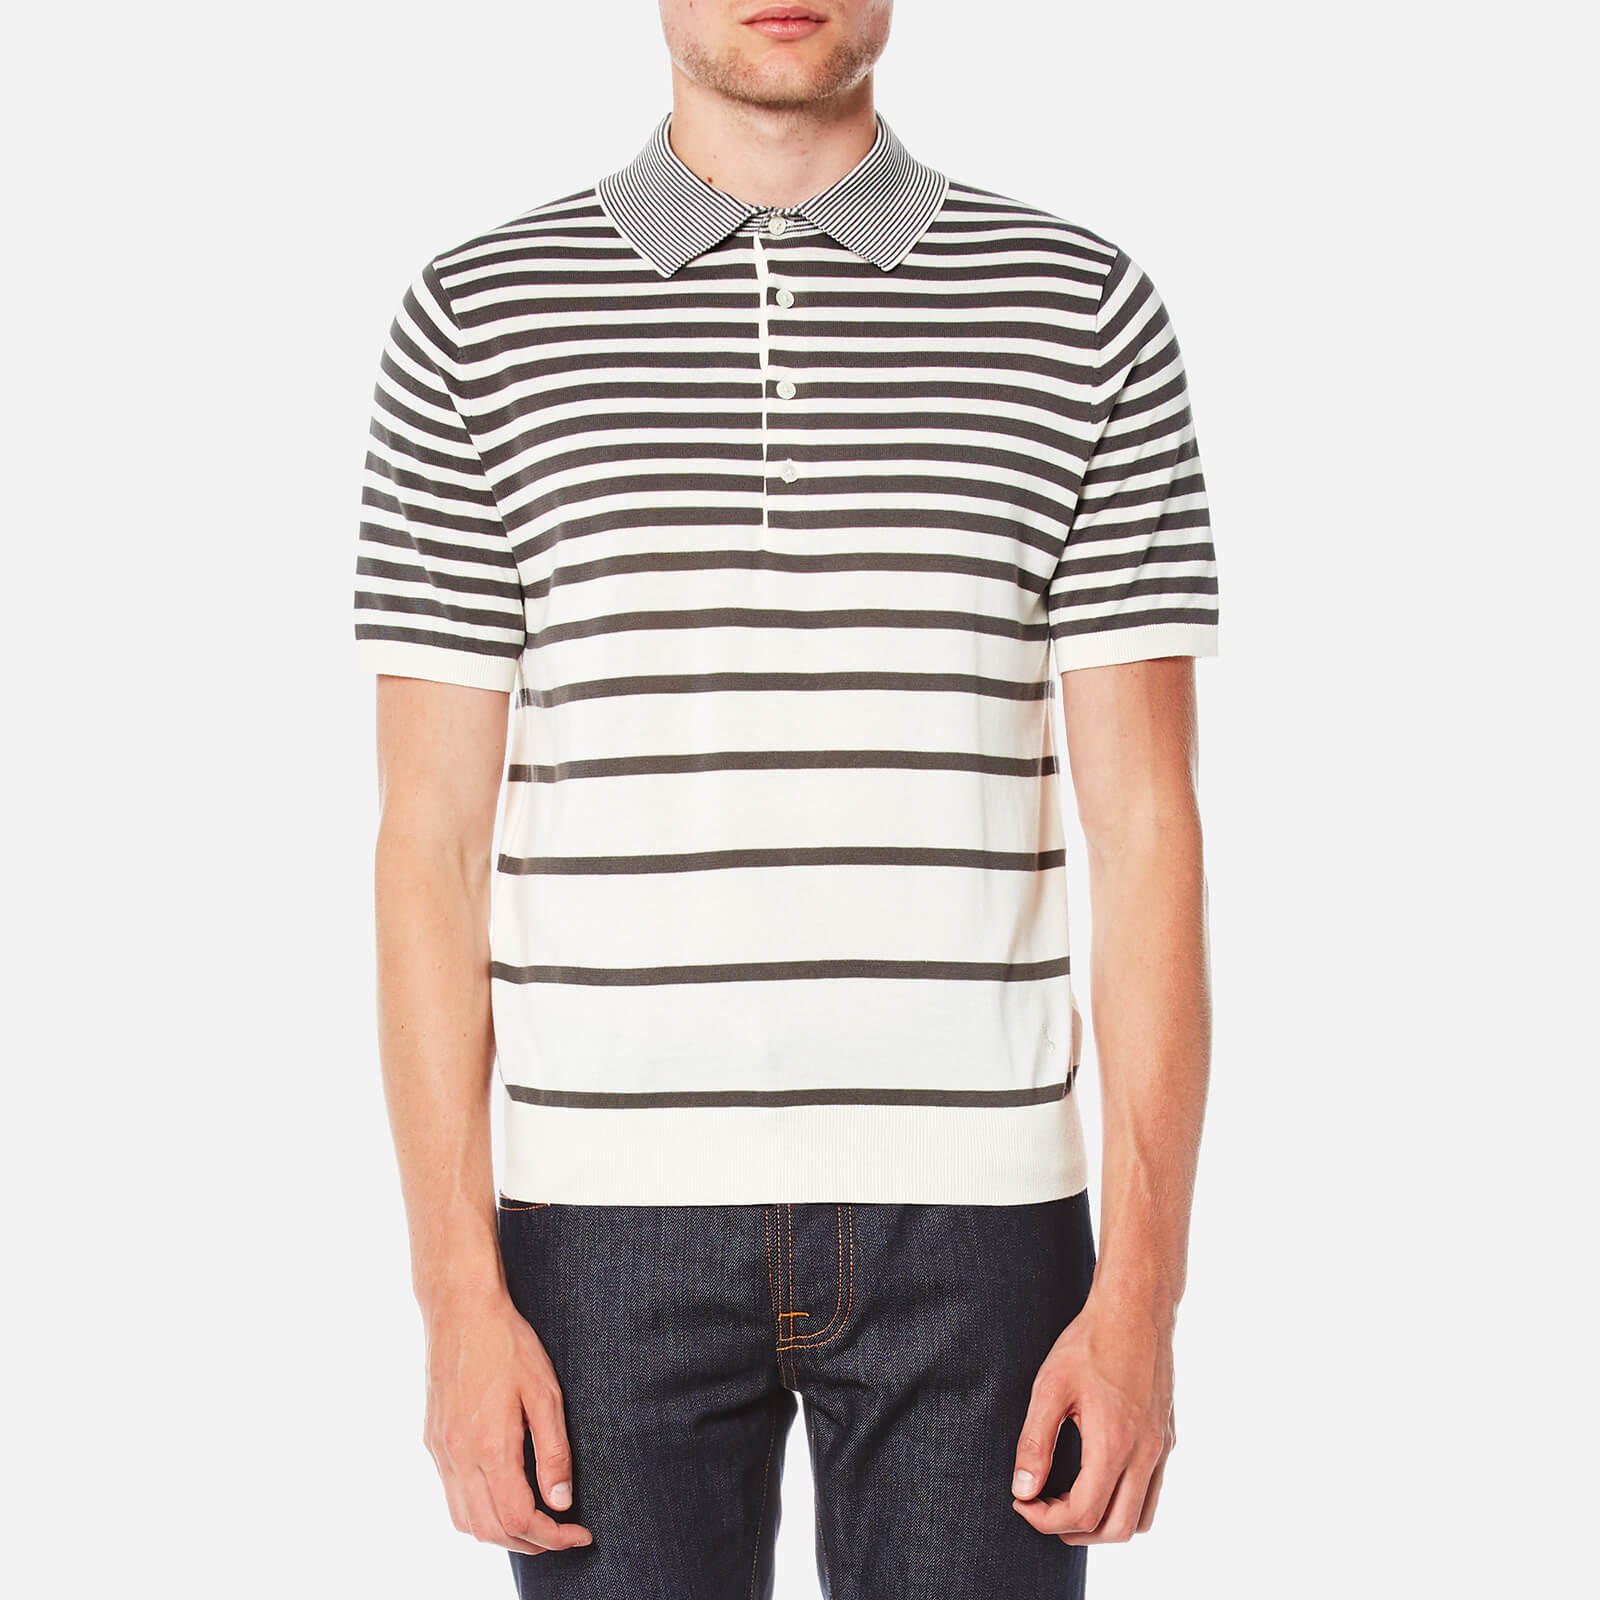 3d7e6bbd PS by Paul Smith Men's Short Sleeve Knitted Striped Polo Shirt - Grey/White  - Free UK Delivery over £50